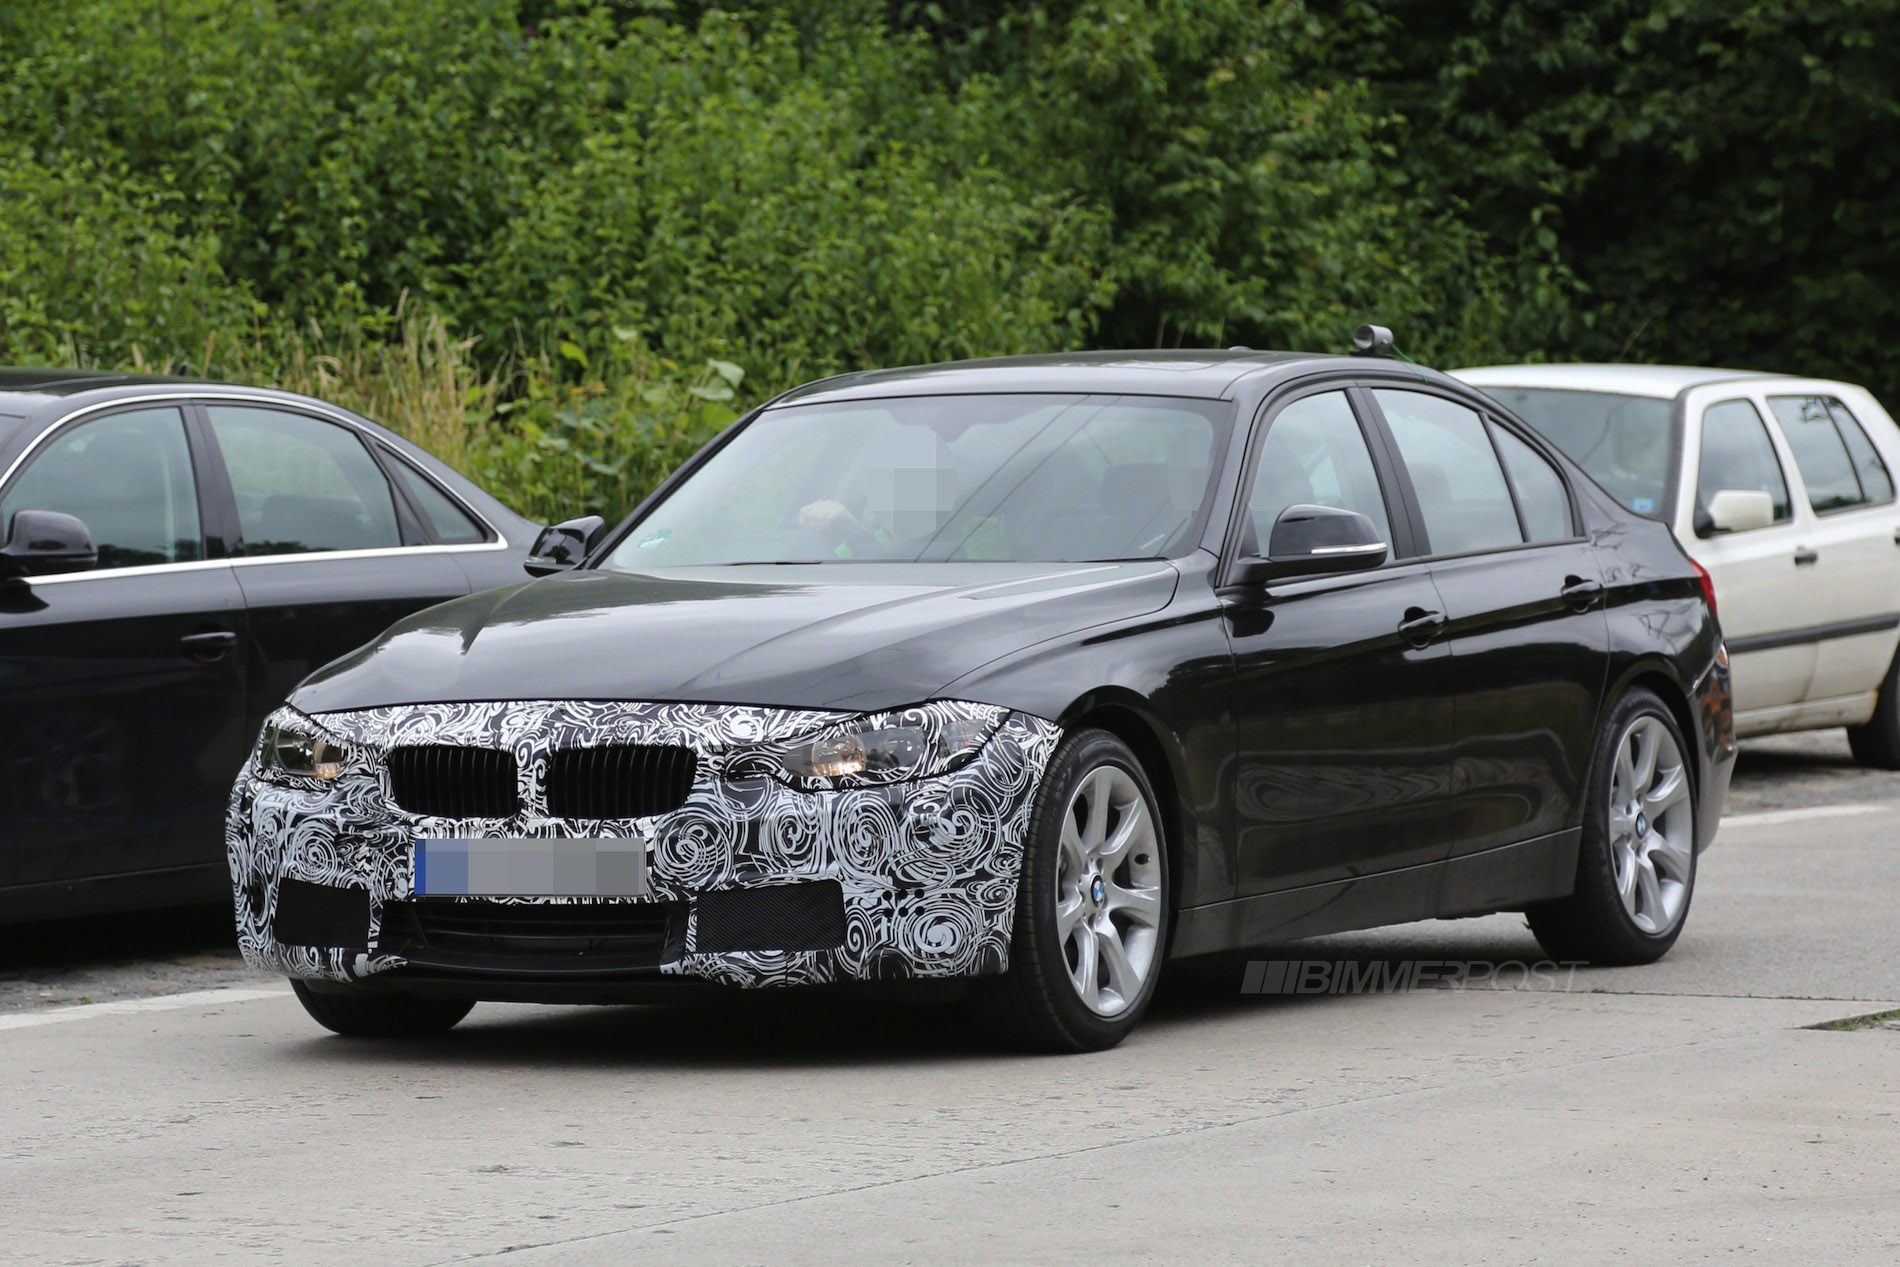 bmw f30 3 series lci facelift prototype spotted. Black Bedroom Furniture Sets. Home Design Ideas